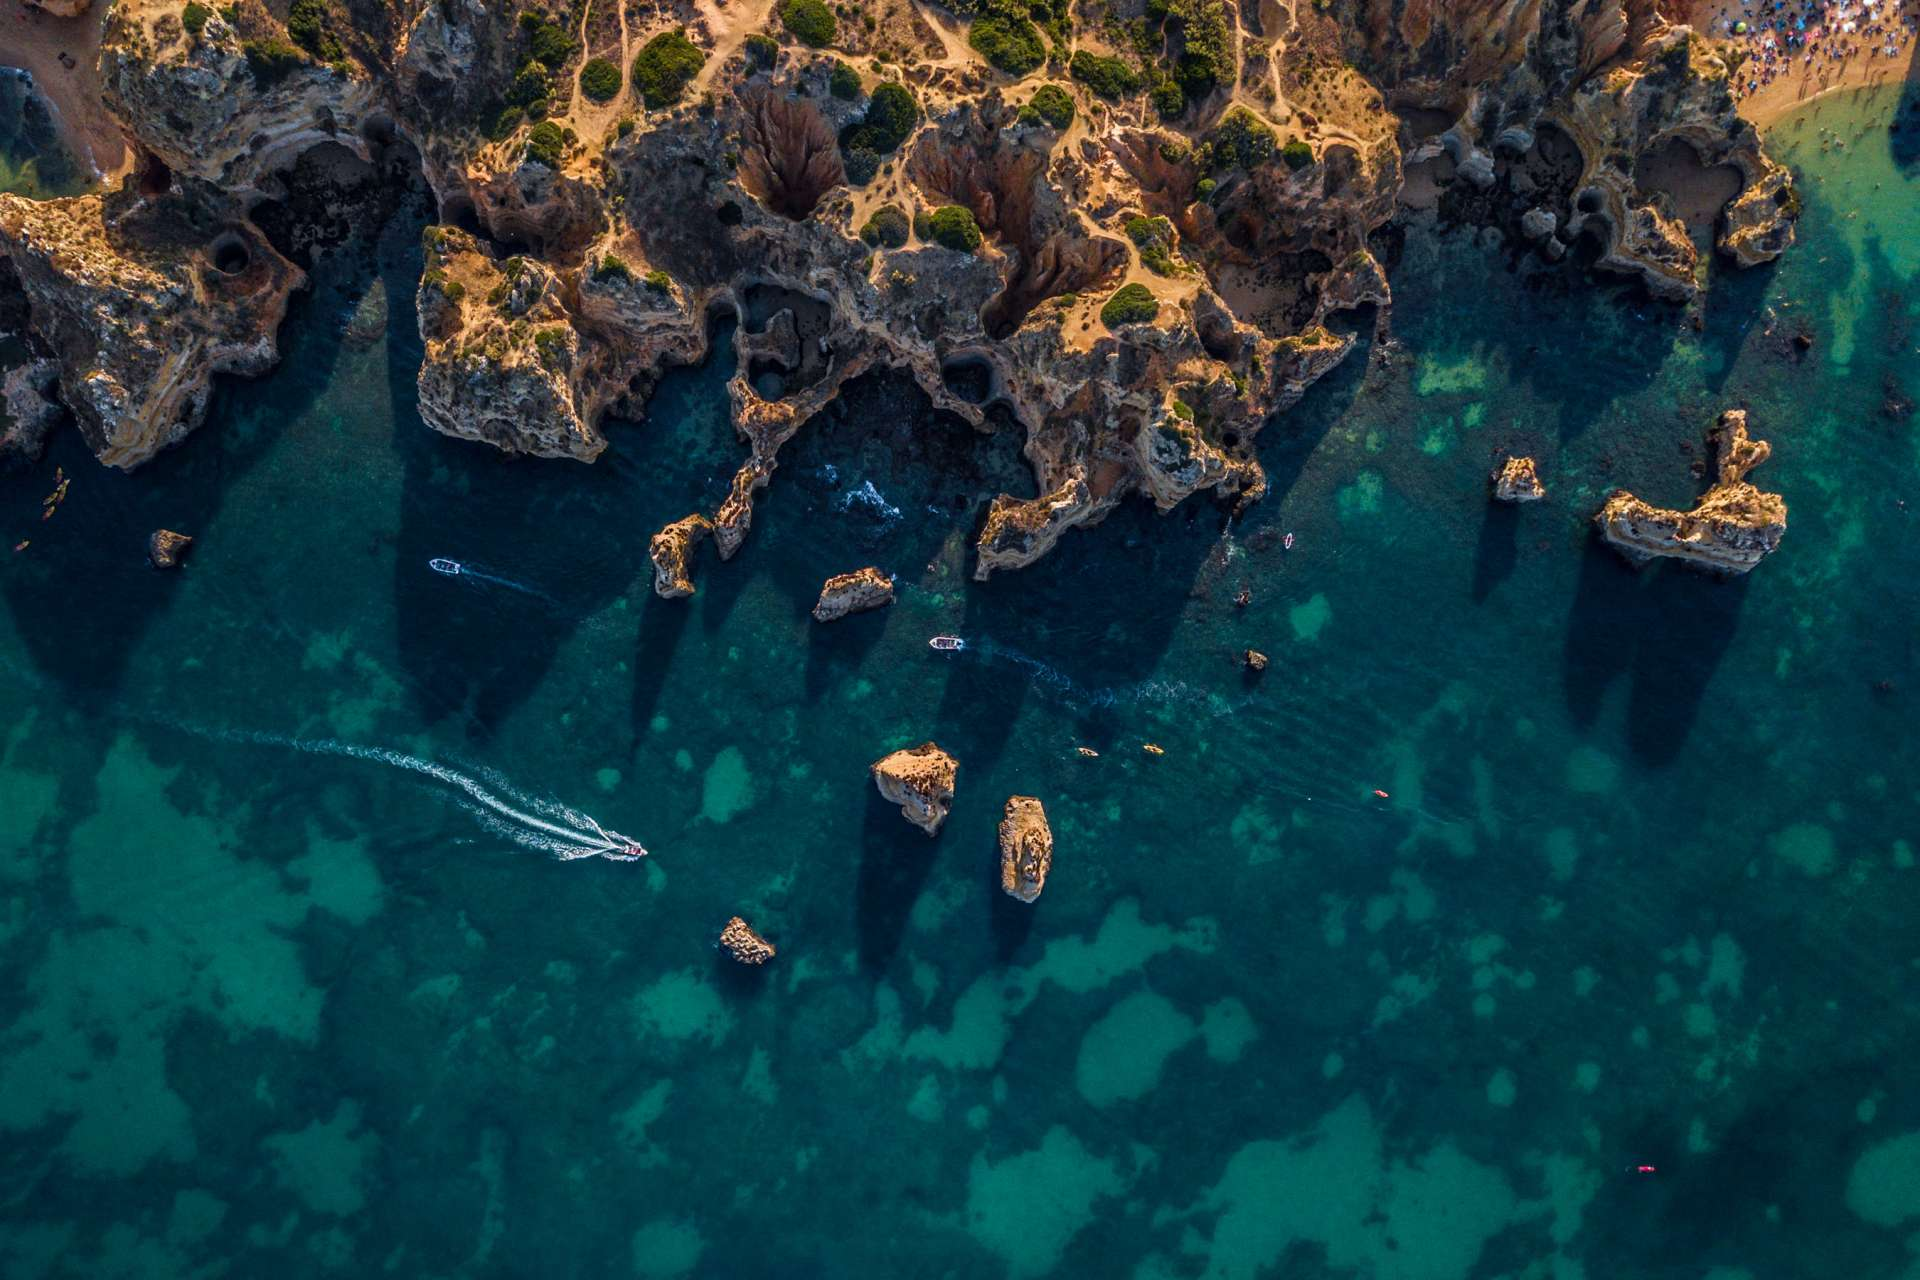 Algarve From Above Drone Photography Enrico Pescantini Between Praia dos Pinheiros and Praia do Camilo